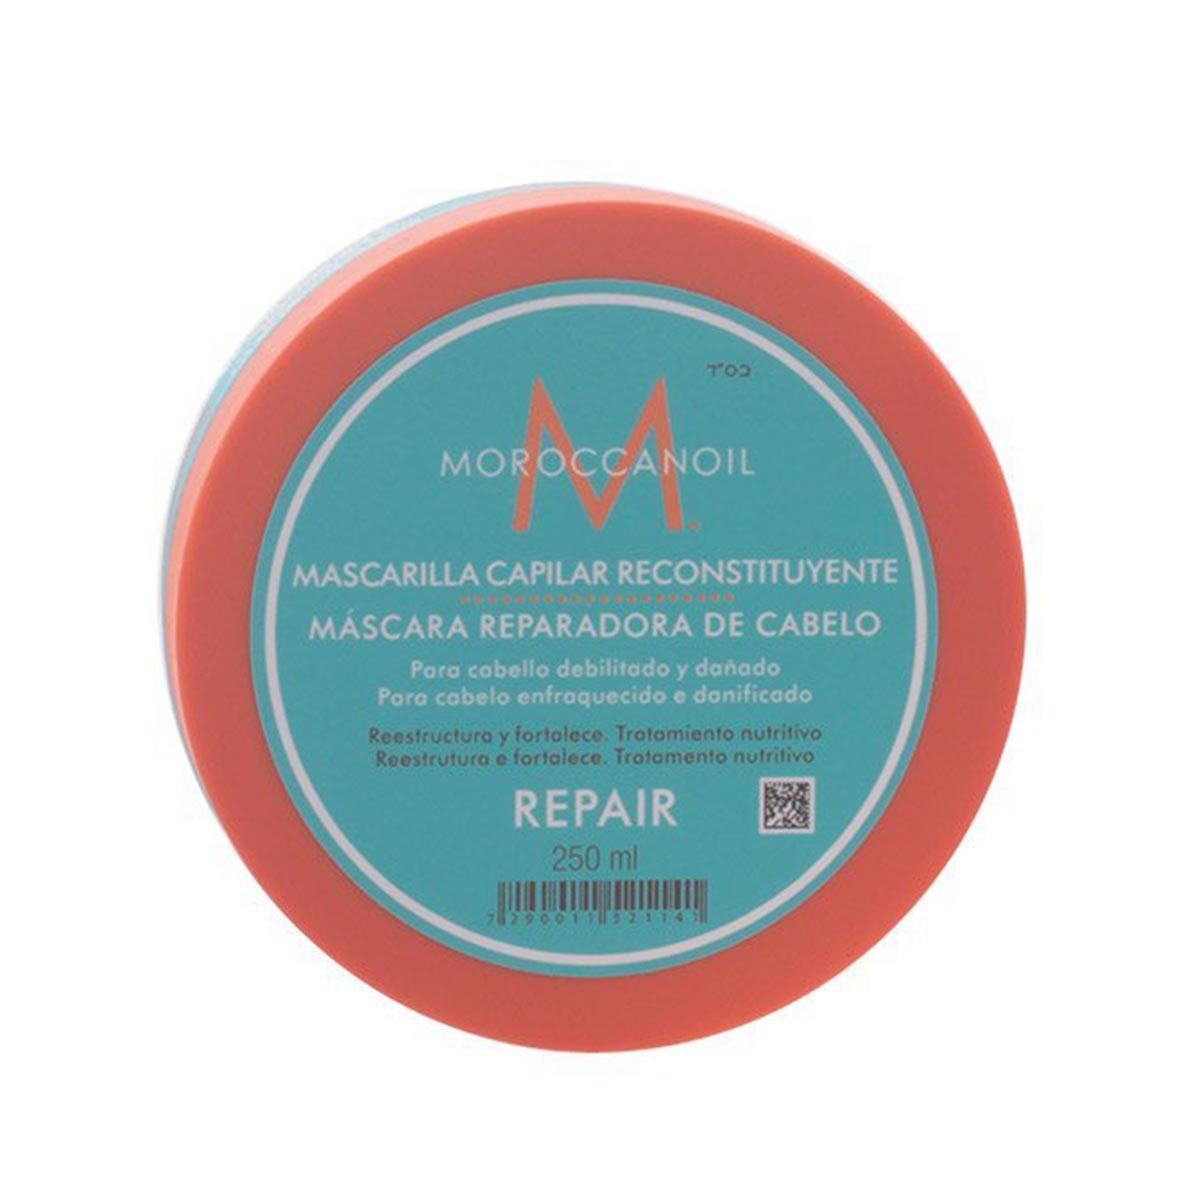 Moroccanoil fragrances Repair Hair Mask 250ml